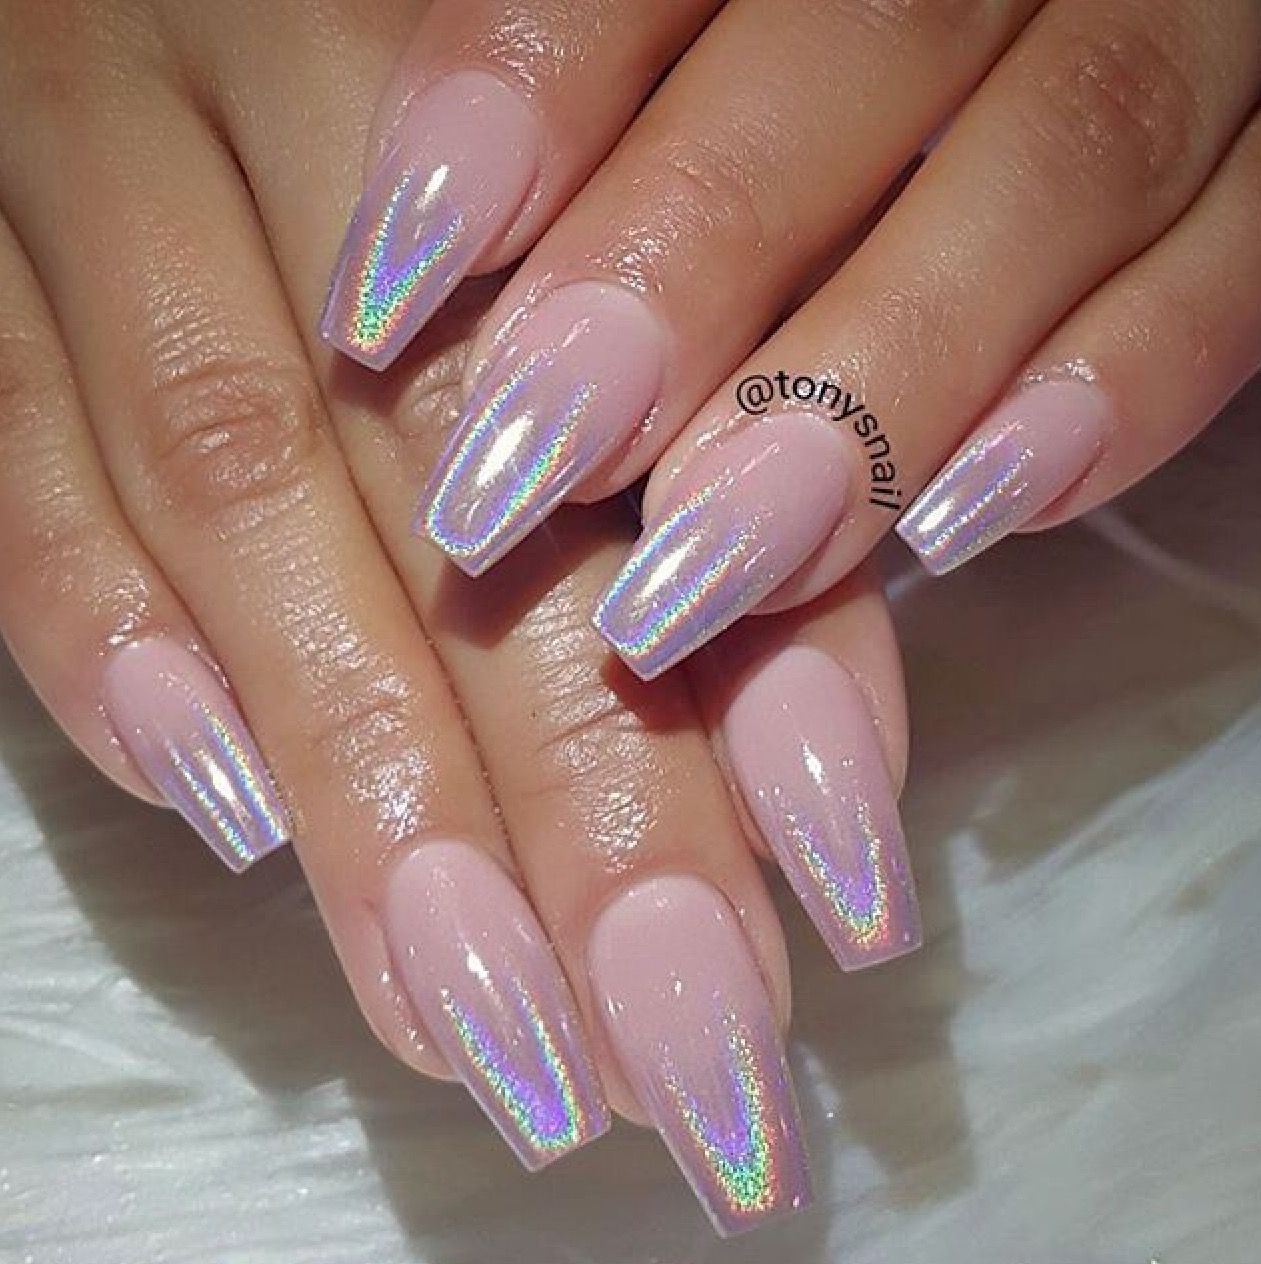 Nails On 10 Holographic Chrome Ombre Paznokcie Zelowe Wzory